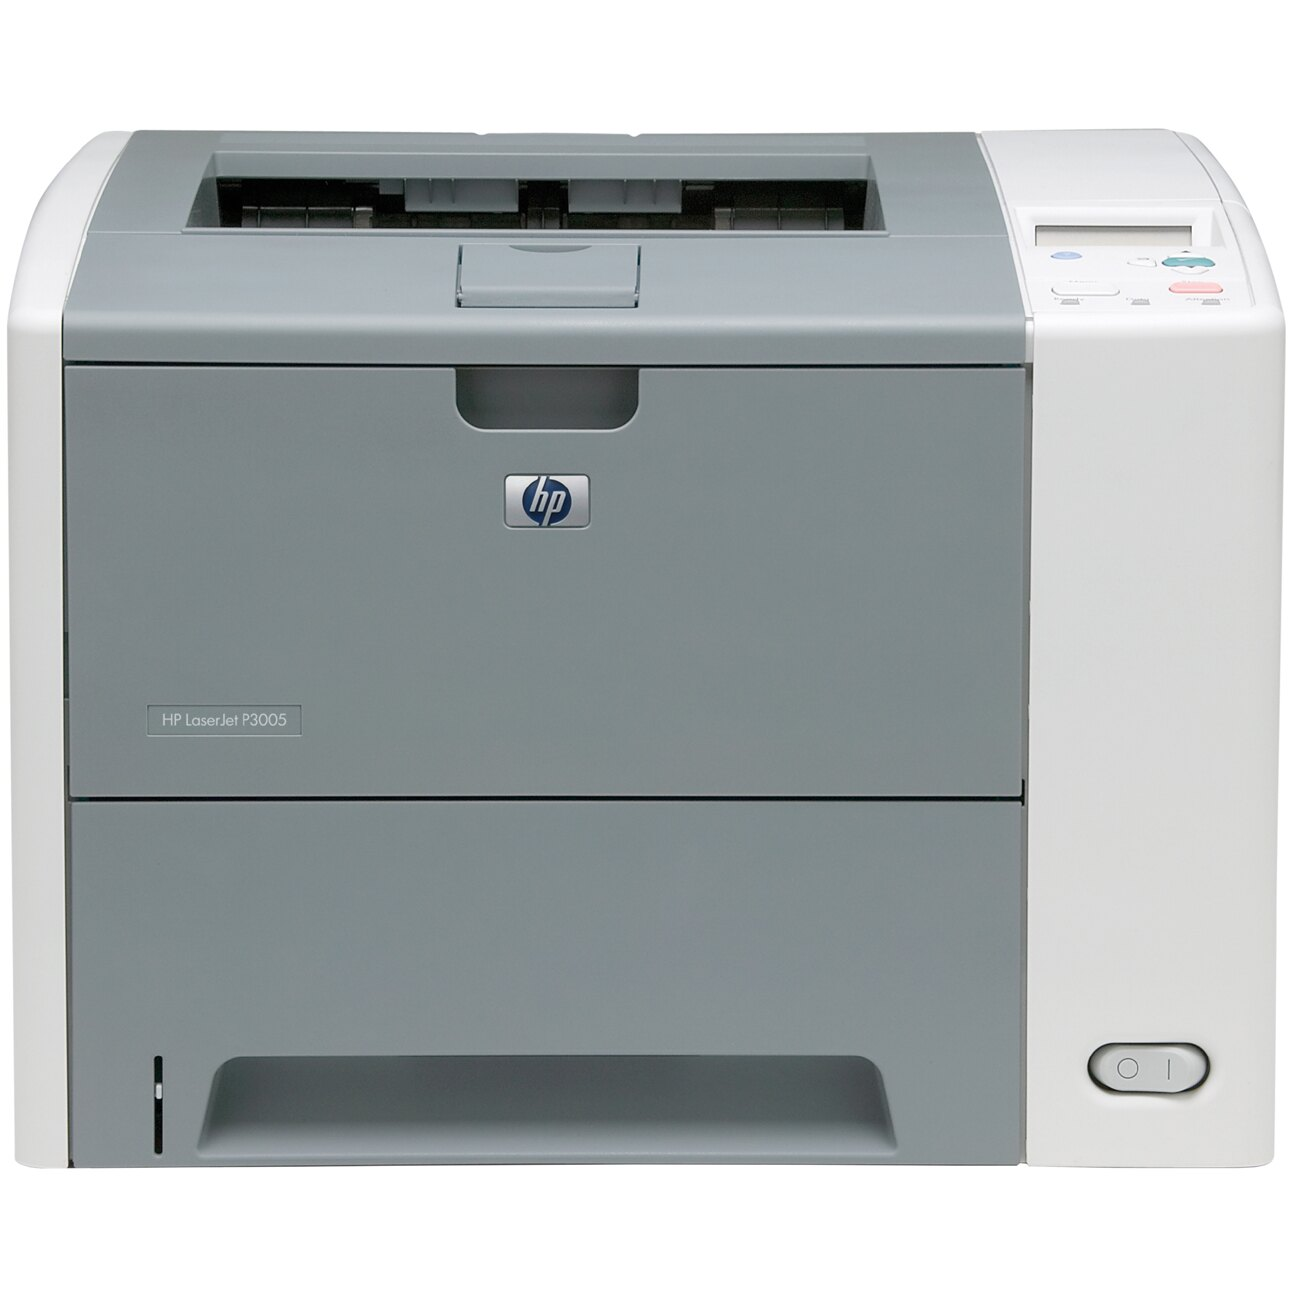 HP LaserJet P3000 P3005 Laser Printer - Monochrome - 1200 x 1200 dpi Print - Plain Paper Print - Desktop - 35 ppm Mono Print - Letter, Legal, Executive, Custom Size - 200 sheets Standard Input Capacity - 100000 Duty Cycle - Manual Duplex Print - USB 0